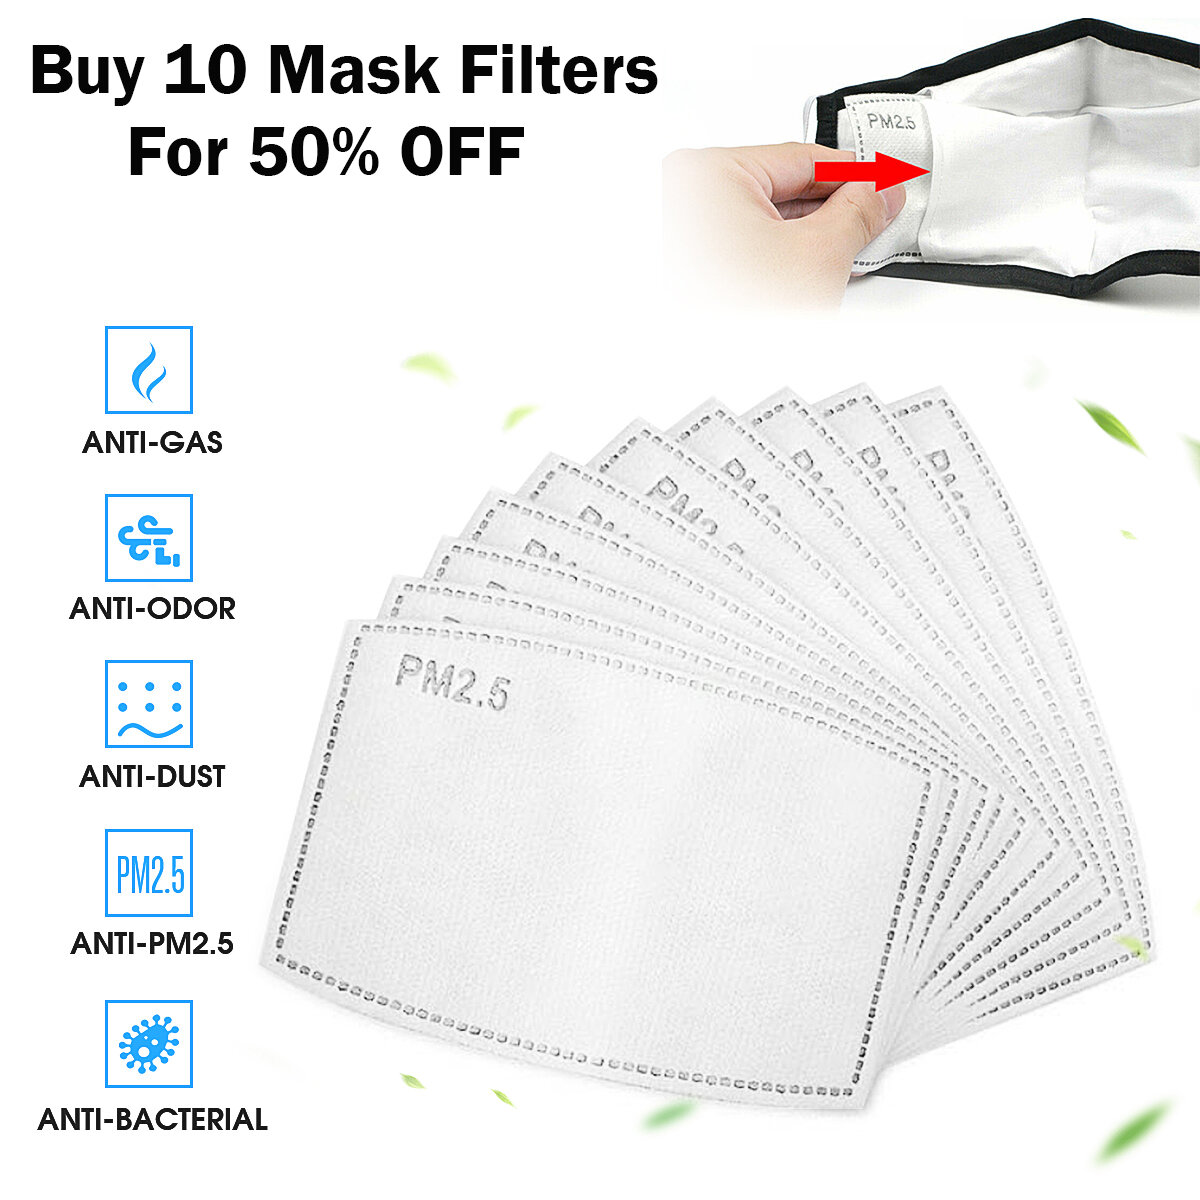 PM2.5 P2 Face Mask Filter Buy Ten For 50% Discount Activated Carbon Breathing Filters Adults